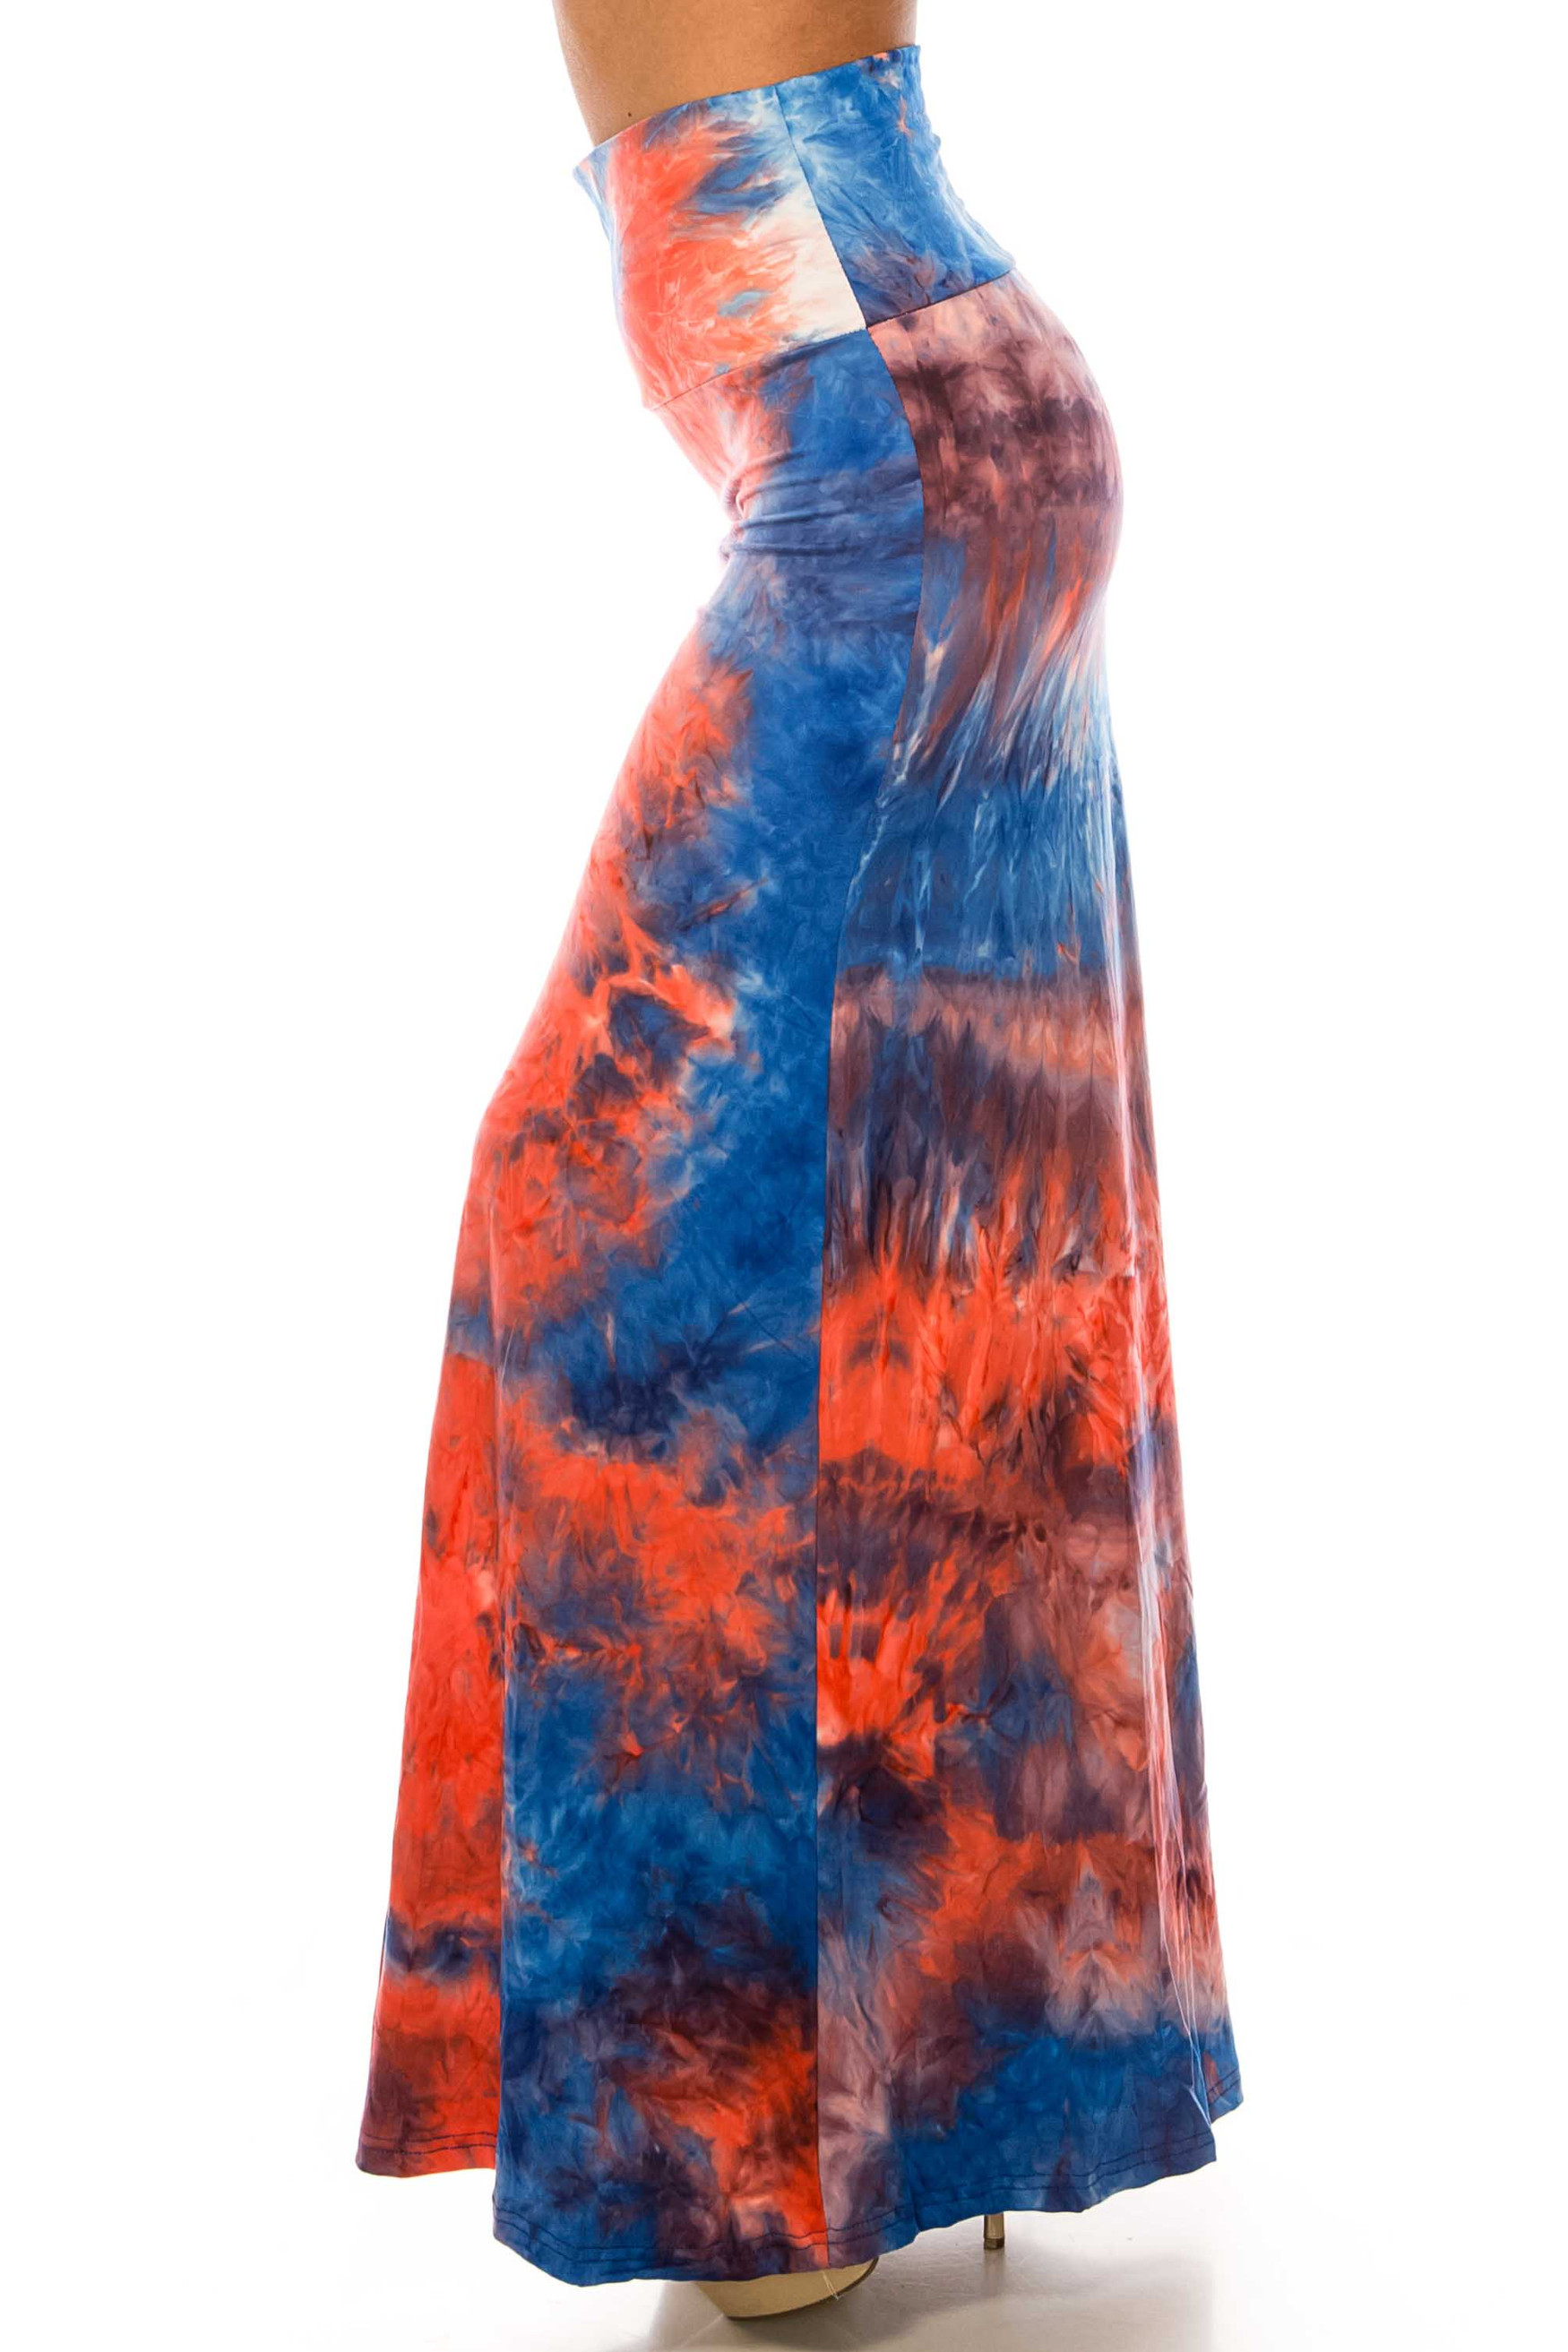 Red and Blue Tie Dye Plus Size Buttery Soft Maxi Skirt